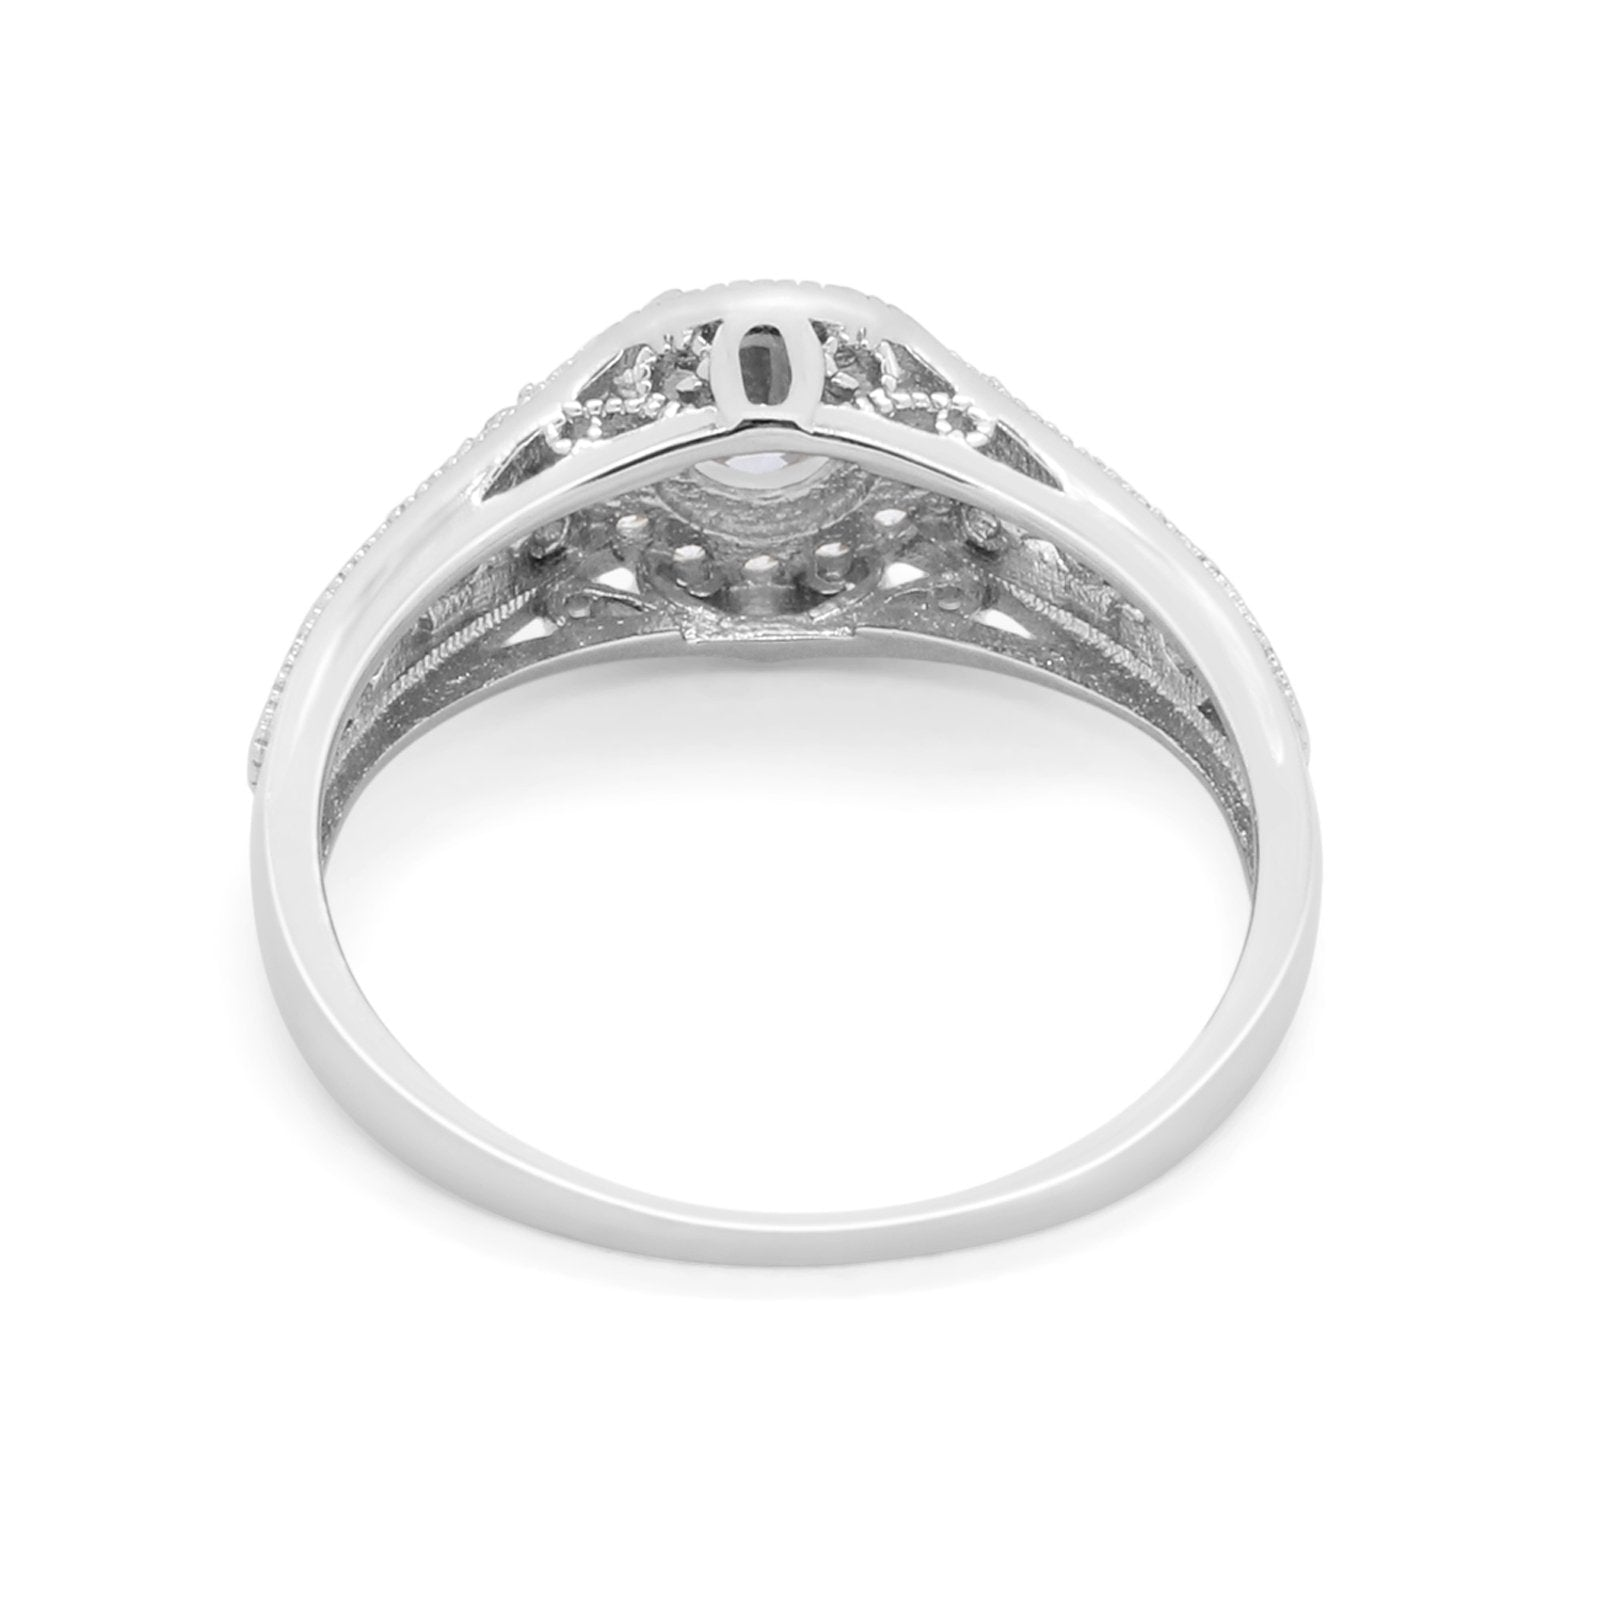 Vintage Style Engagement Ring Halo Simulated Cubic Zirconia 925 Sterling Silver